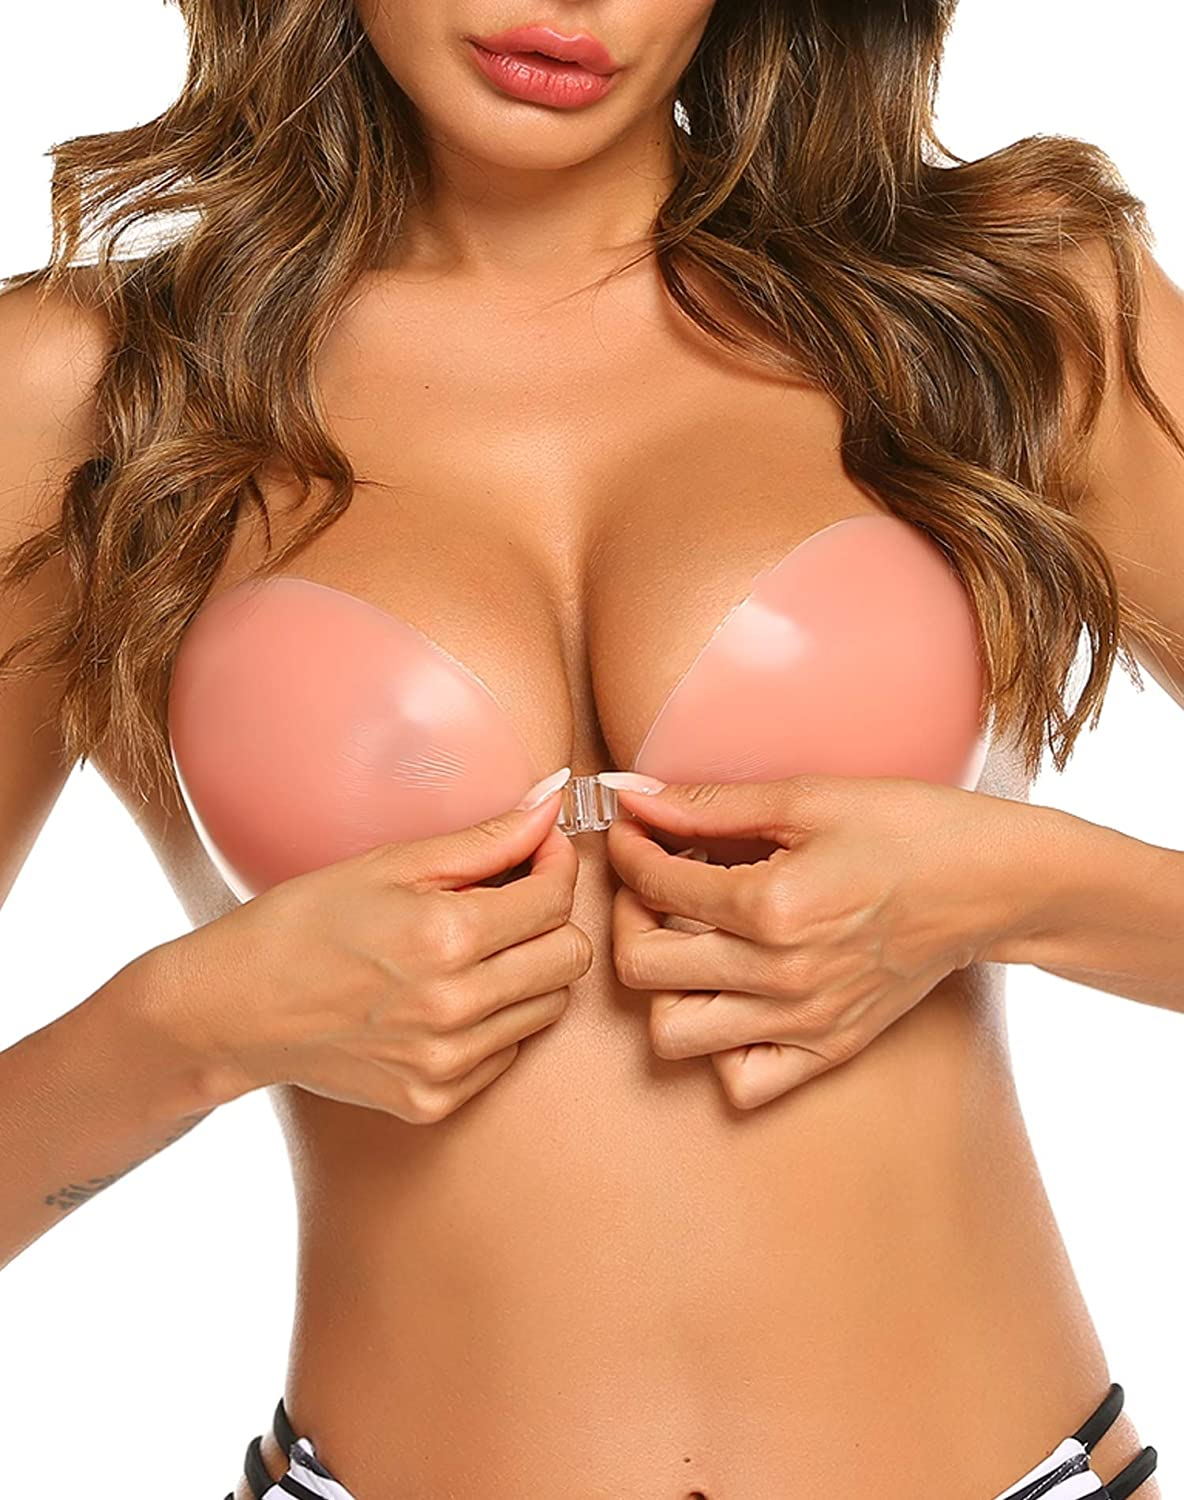 ELOVER Adhesive Bra Reusable Strapless Sticky Invisible Push up Silicone Bra